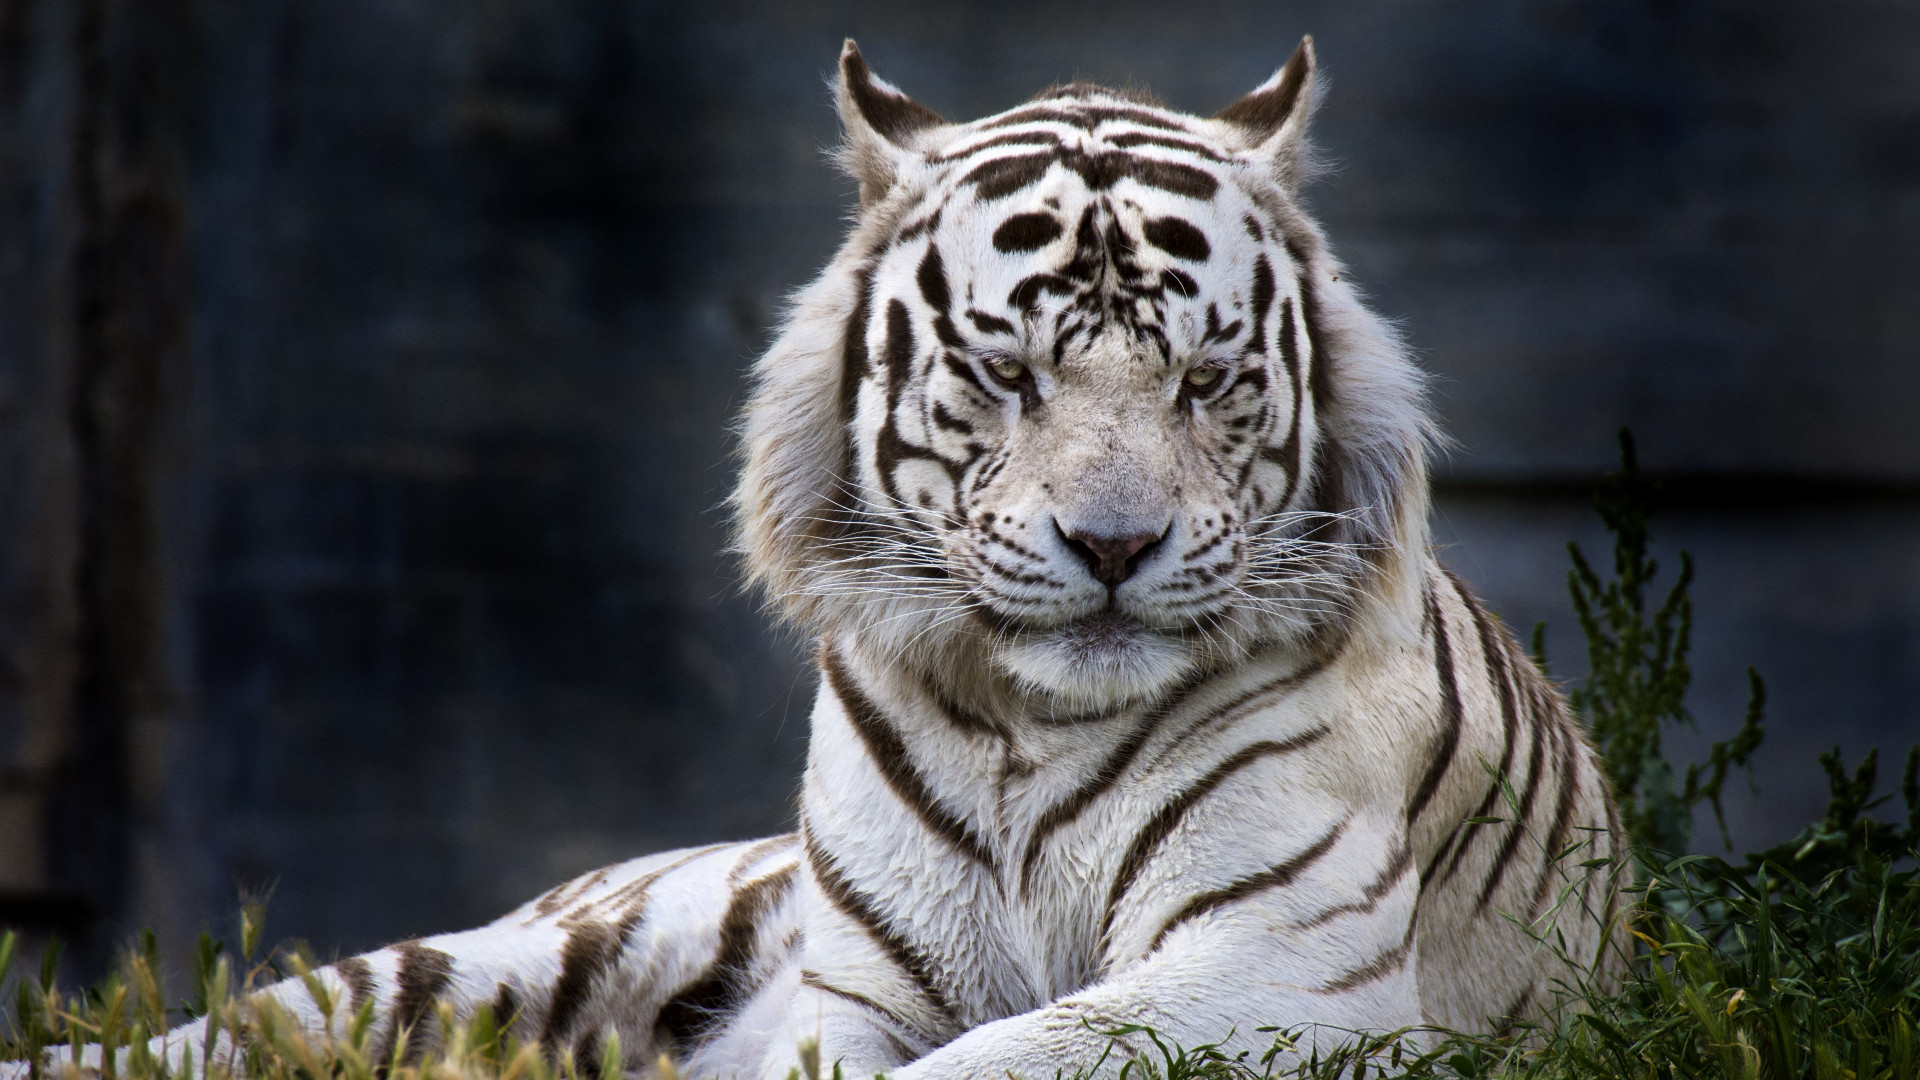 The white tiger from Madrid Zoo | 1920x1080 wallpaper